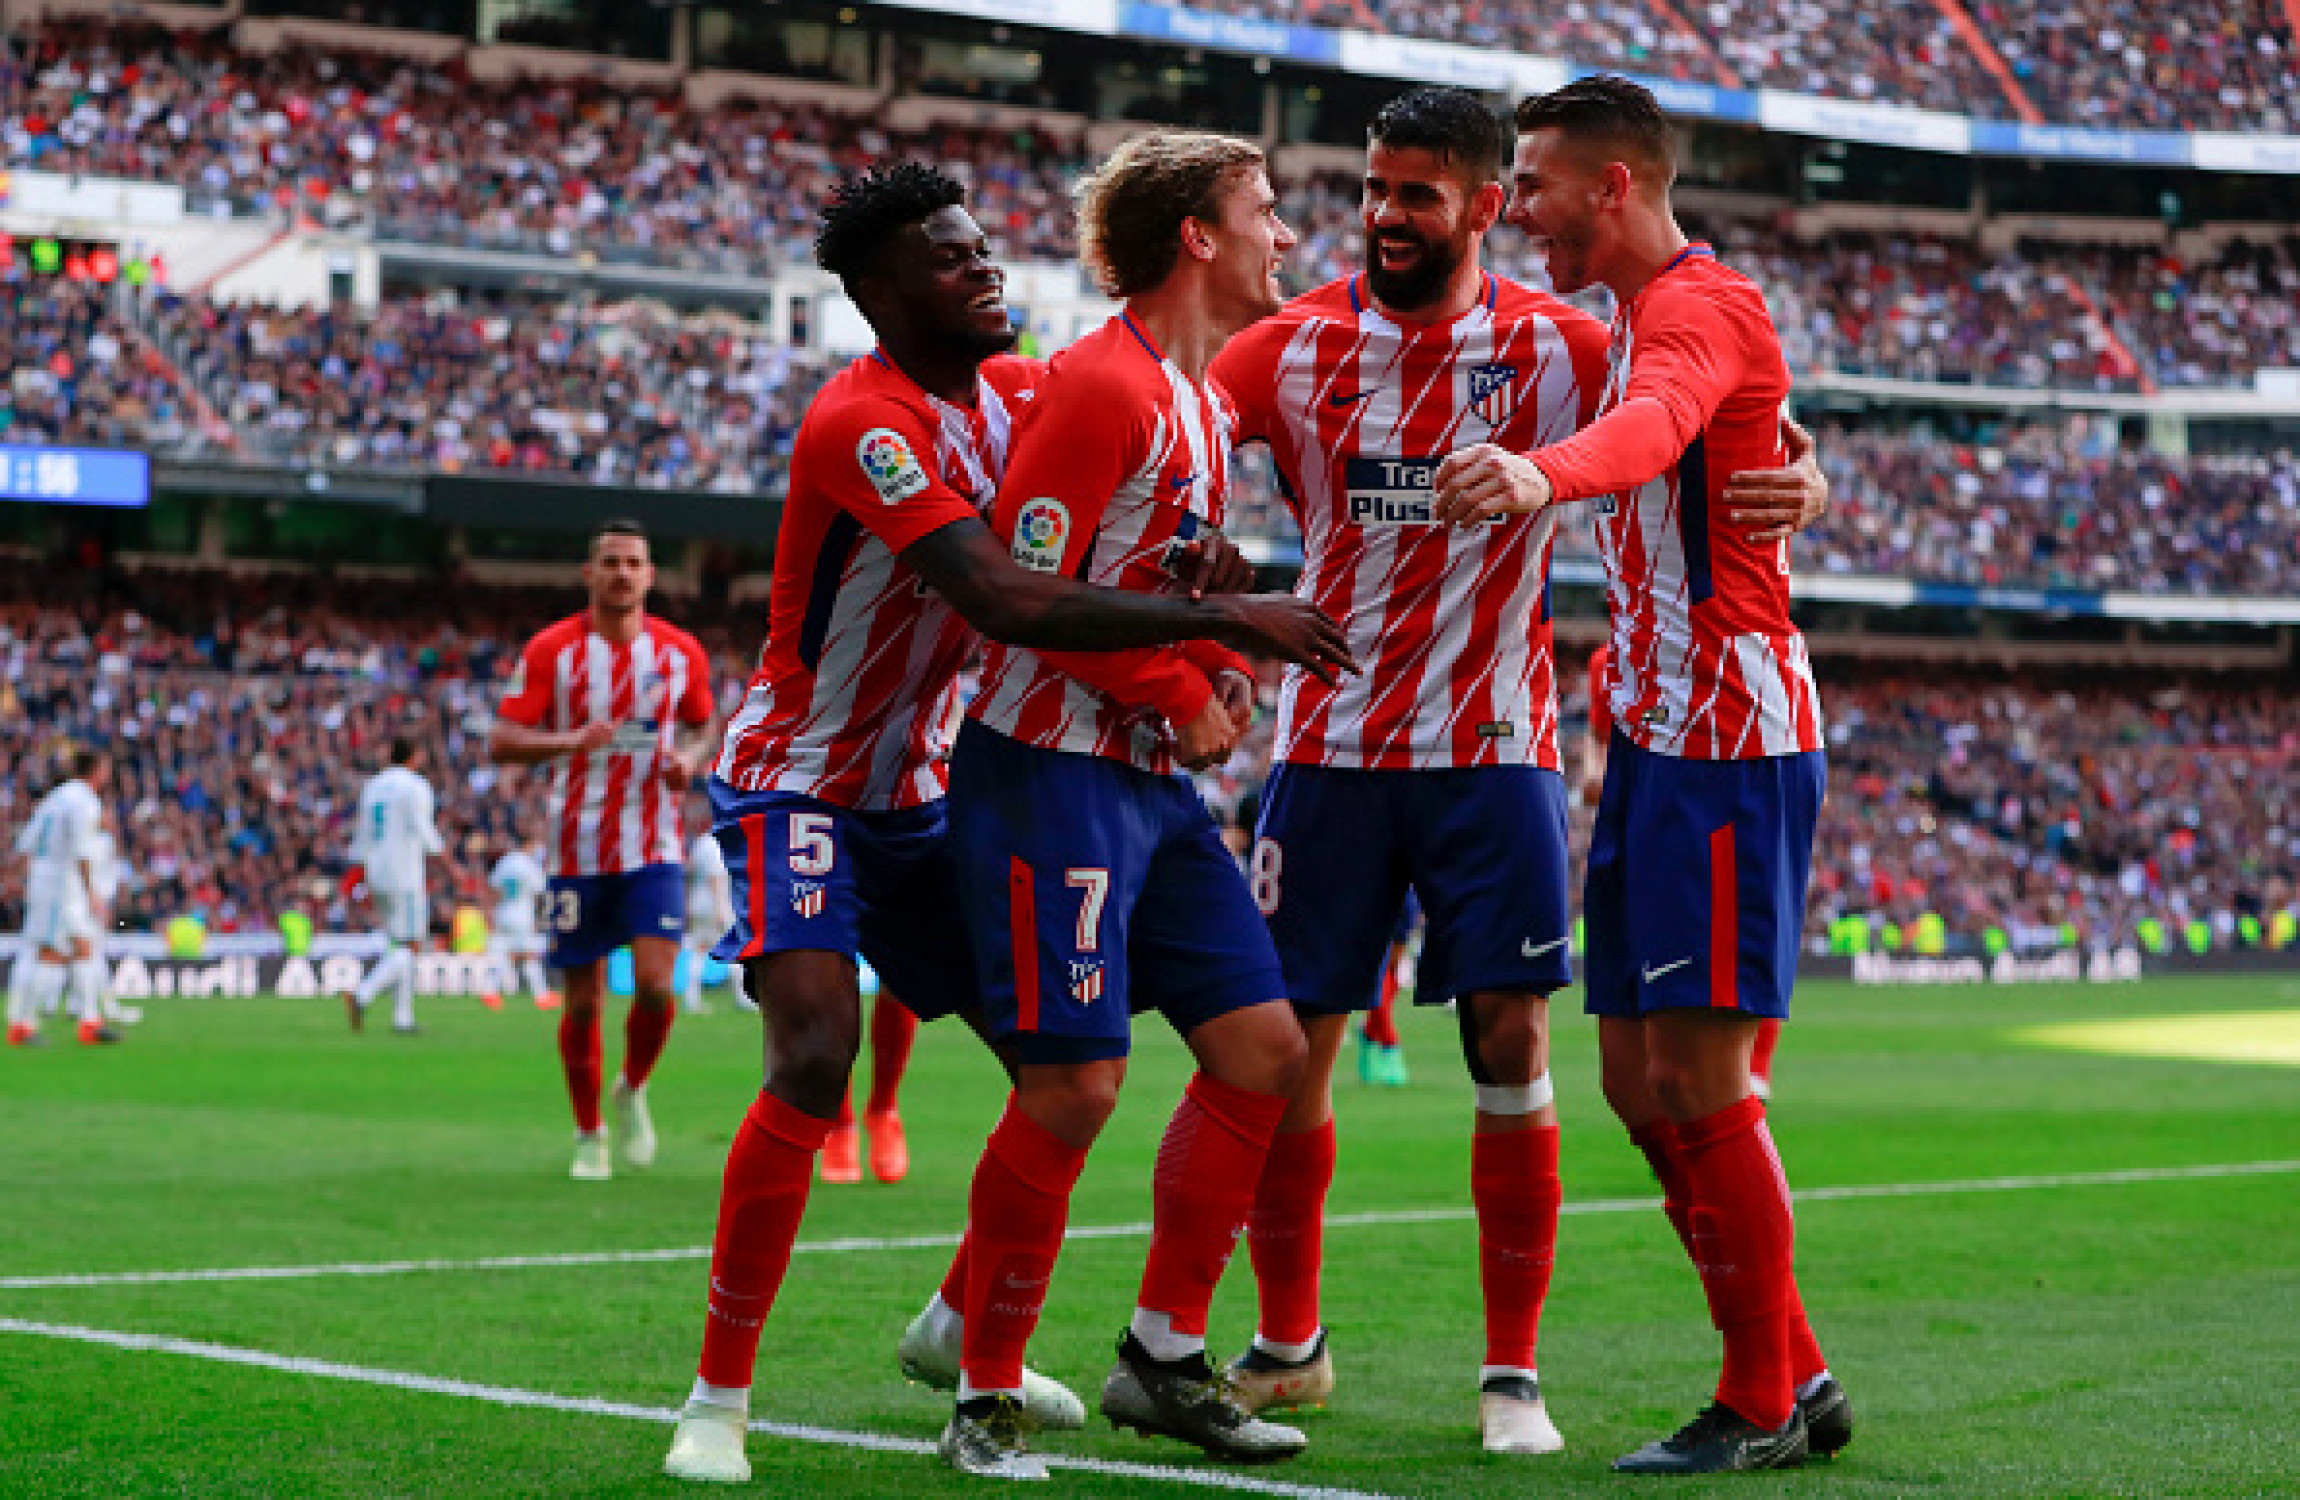 Real Madrid has best squad in Europe: Simeone